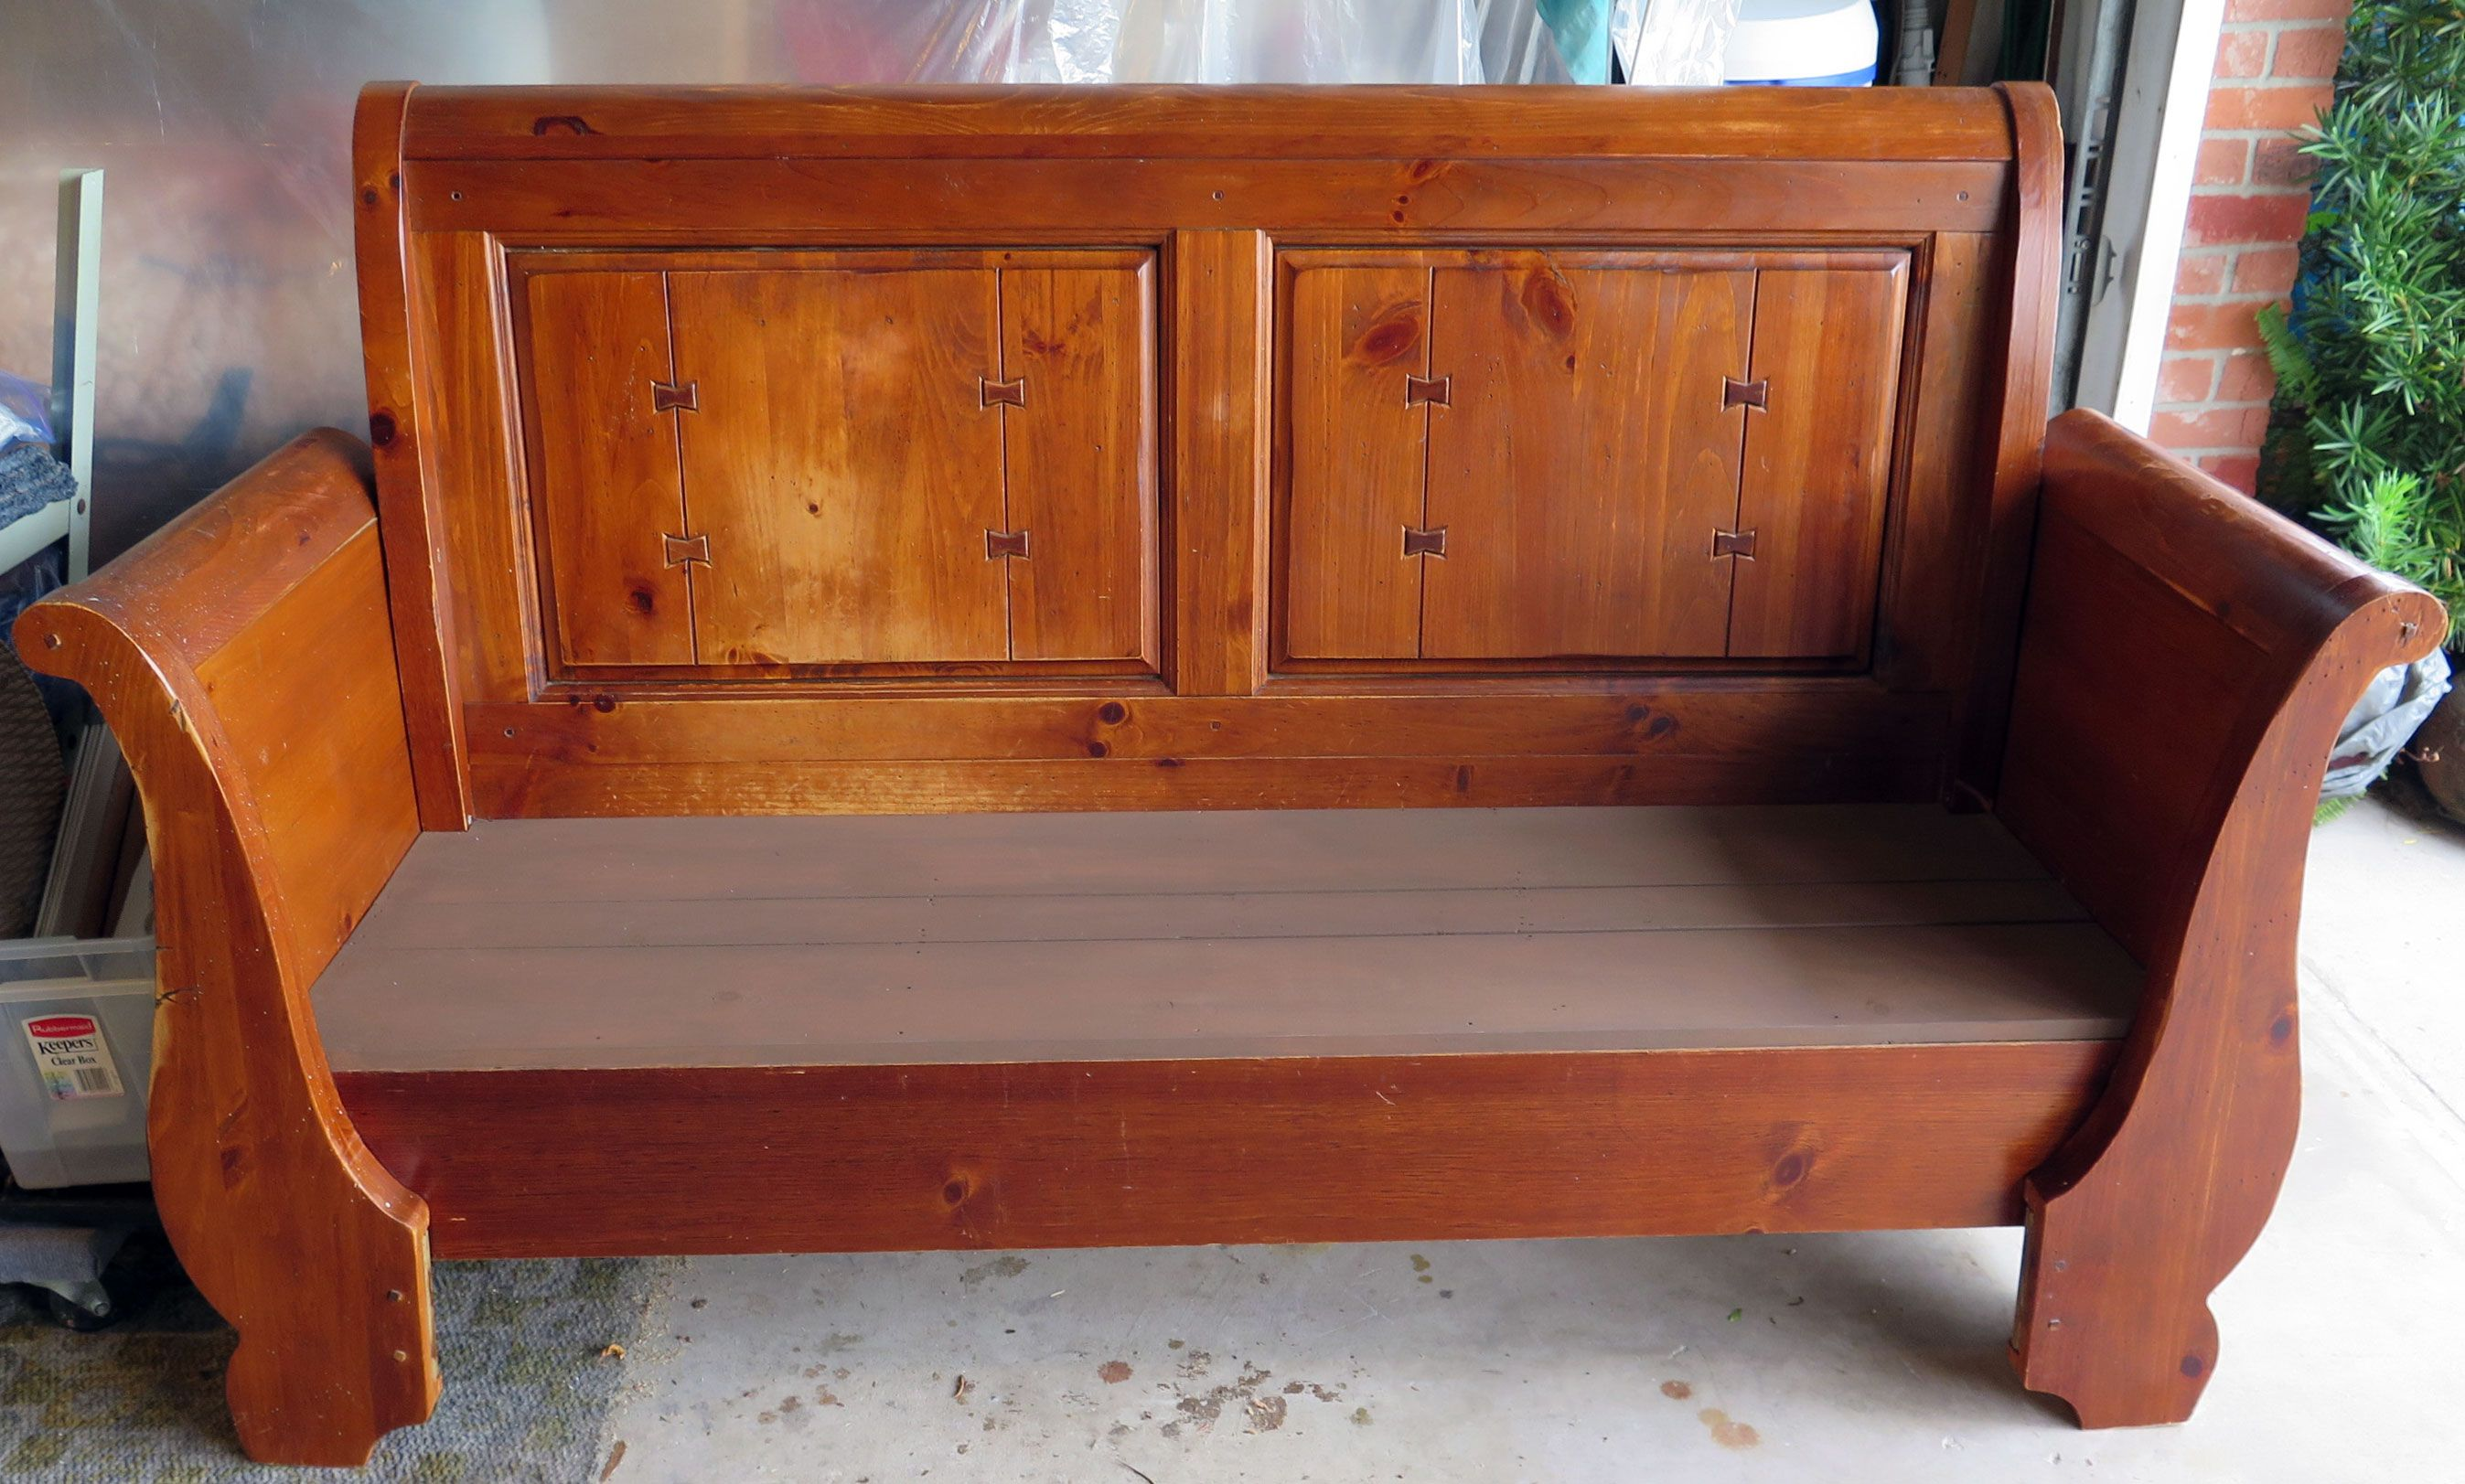 Astonishing Sleigh Bed Bench Another Curb Find Queen Size Sleigh Bed Spiritservingveterans Wood Chair Design Ideas Spiritservingveteransorg